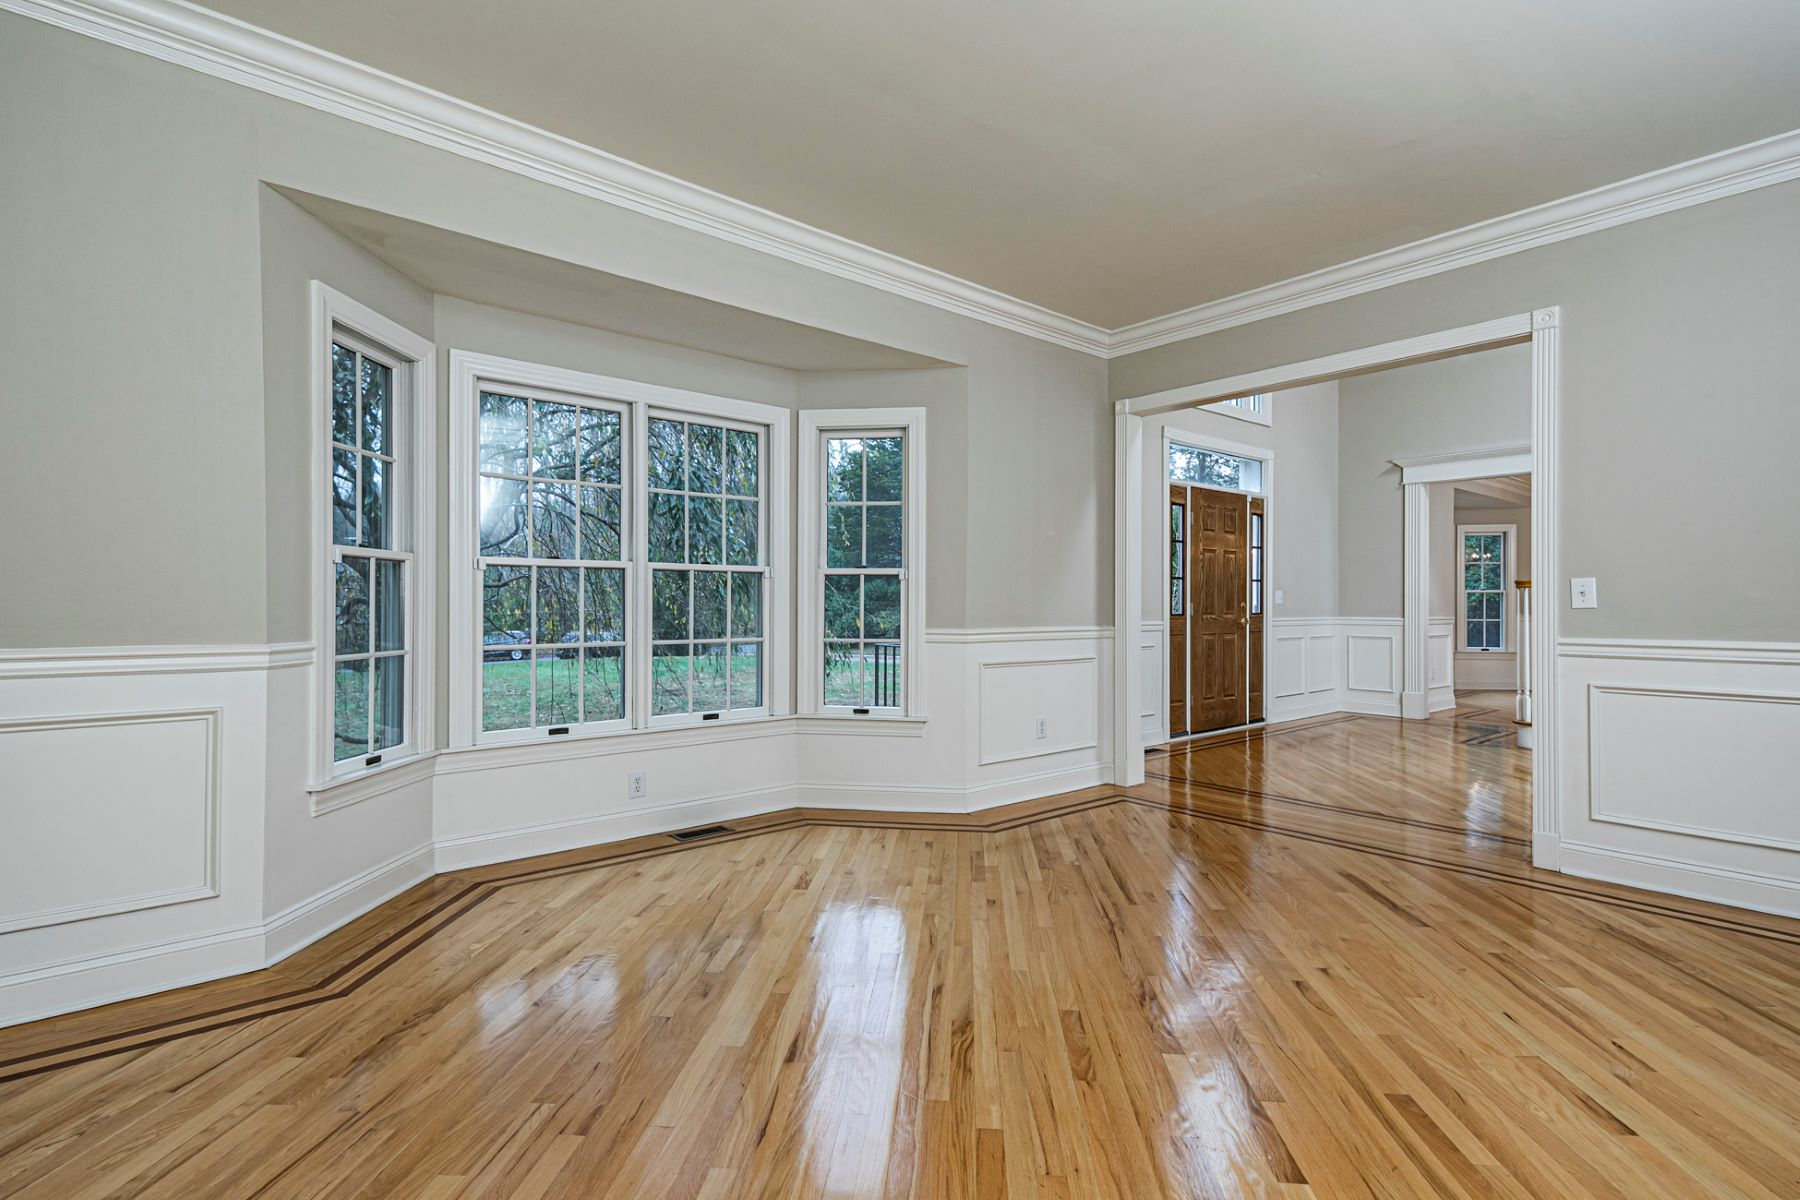 Additional photo for property listing at A Refined Interior Full of Finishing Touches 10 East Shore Drive, Princeton, New Jersey 08540 United States